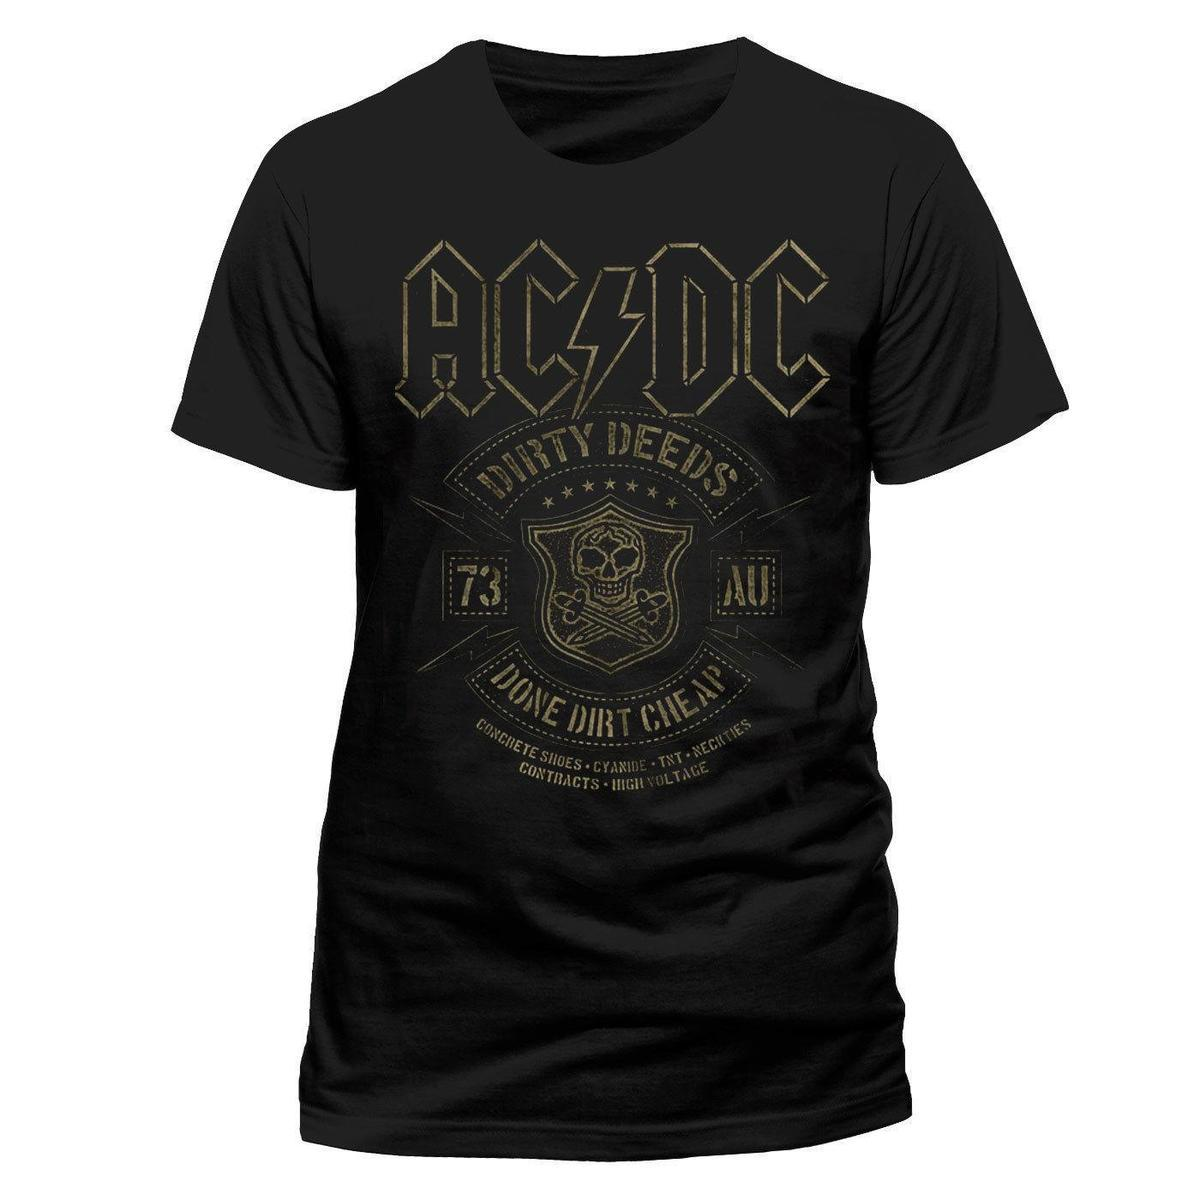 428d2c1d65860 ACDC Official Dirty Deeds Done Pas Cher Rock Métal Lourd T Shirt Pour Hommes  Go T Shirts Really Funny Shirts From Yuxin008, $13.8| DHgate.Com